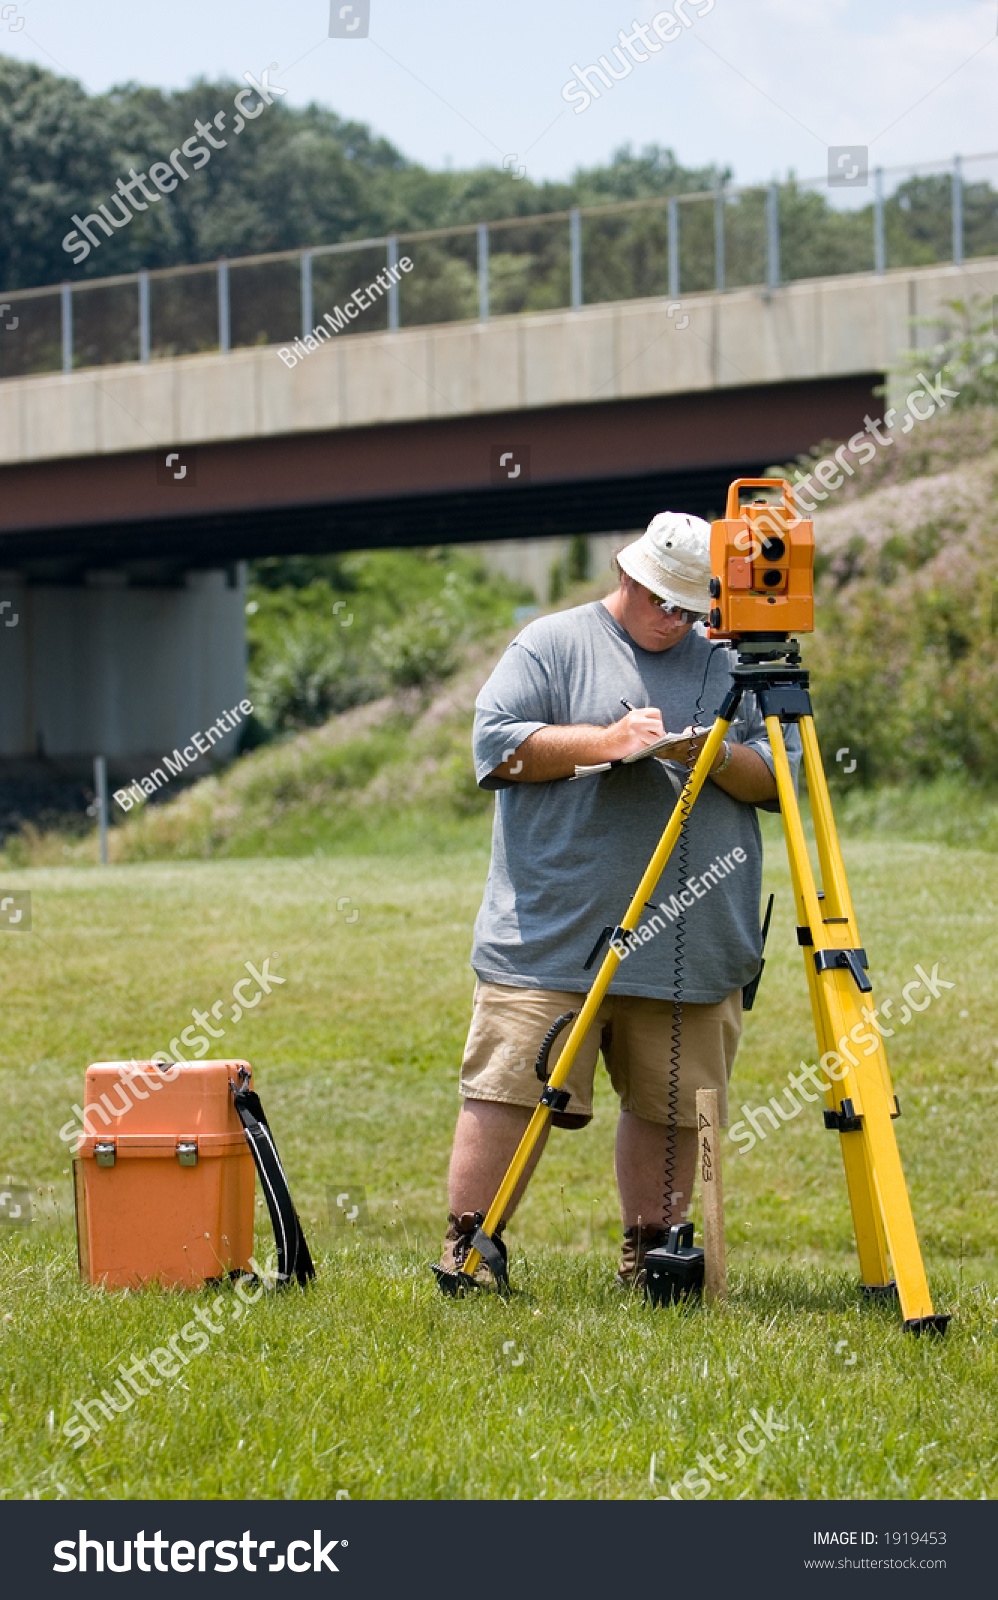 Surveying Electronic Distance Measurement : Land surveyor operating an electronic distance meter and